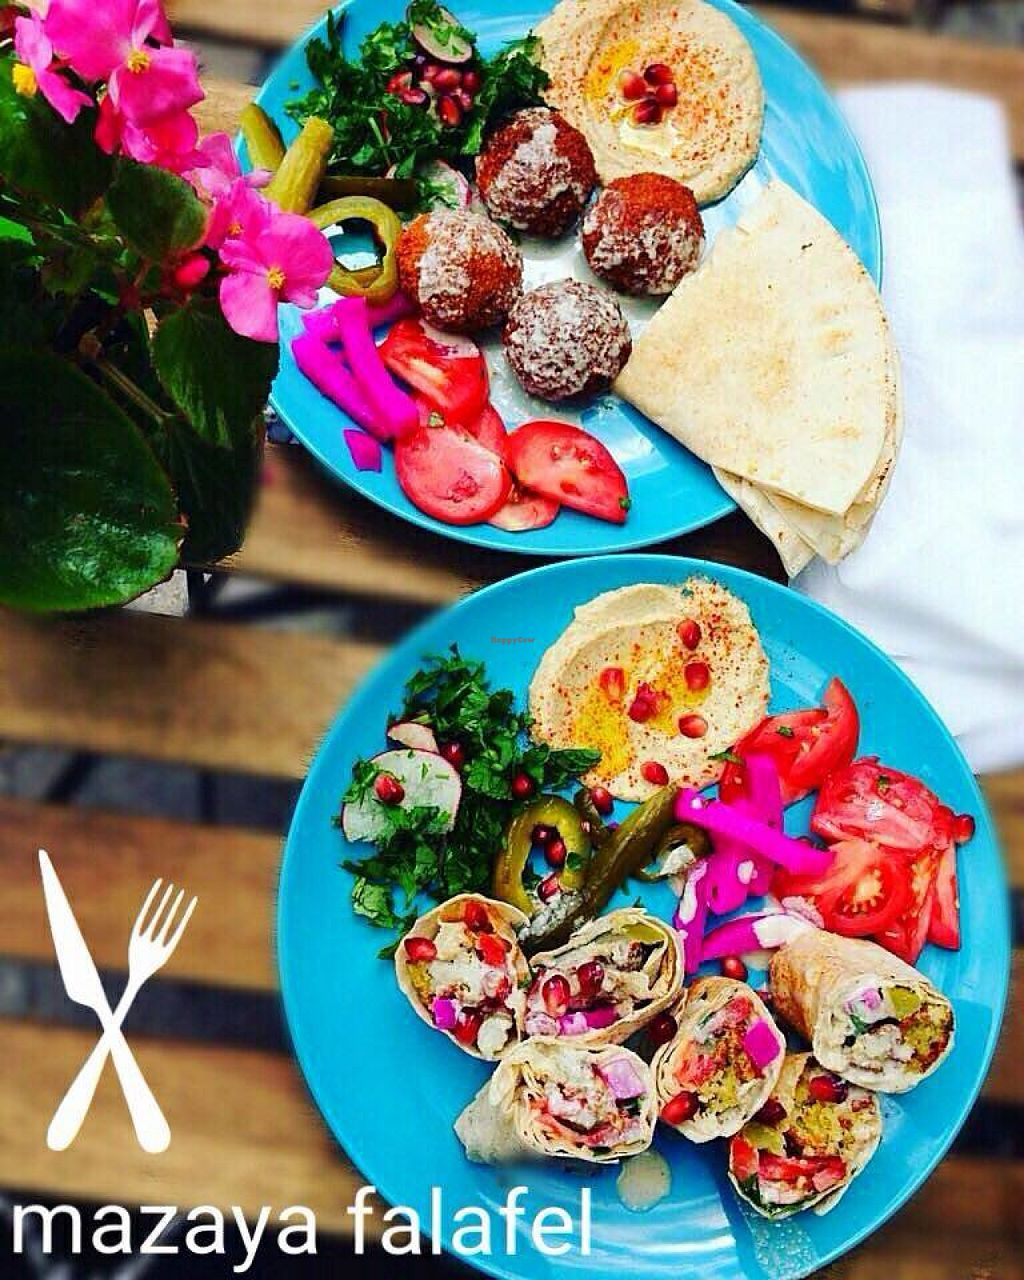 """Photo of Mazaya Falafel  by <a href=""""/members/profile/RoslinnieJemy"""">RoslinnieJemy</a> <br/>Mazaya falafel <br/> July 6, 2016  - <a href='/contact/abuse/image/75827/158153'>Report</a>"""